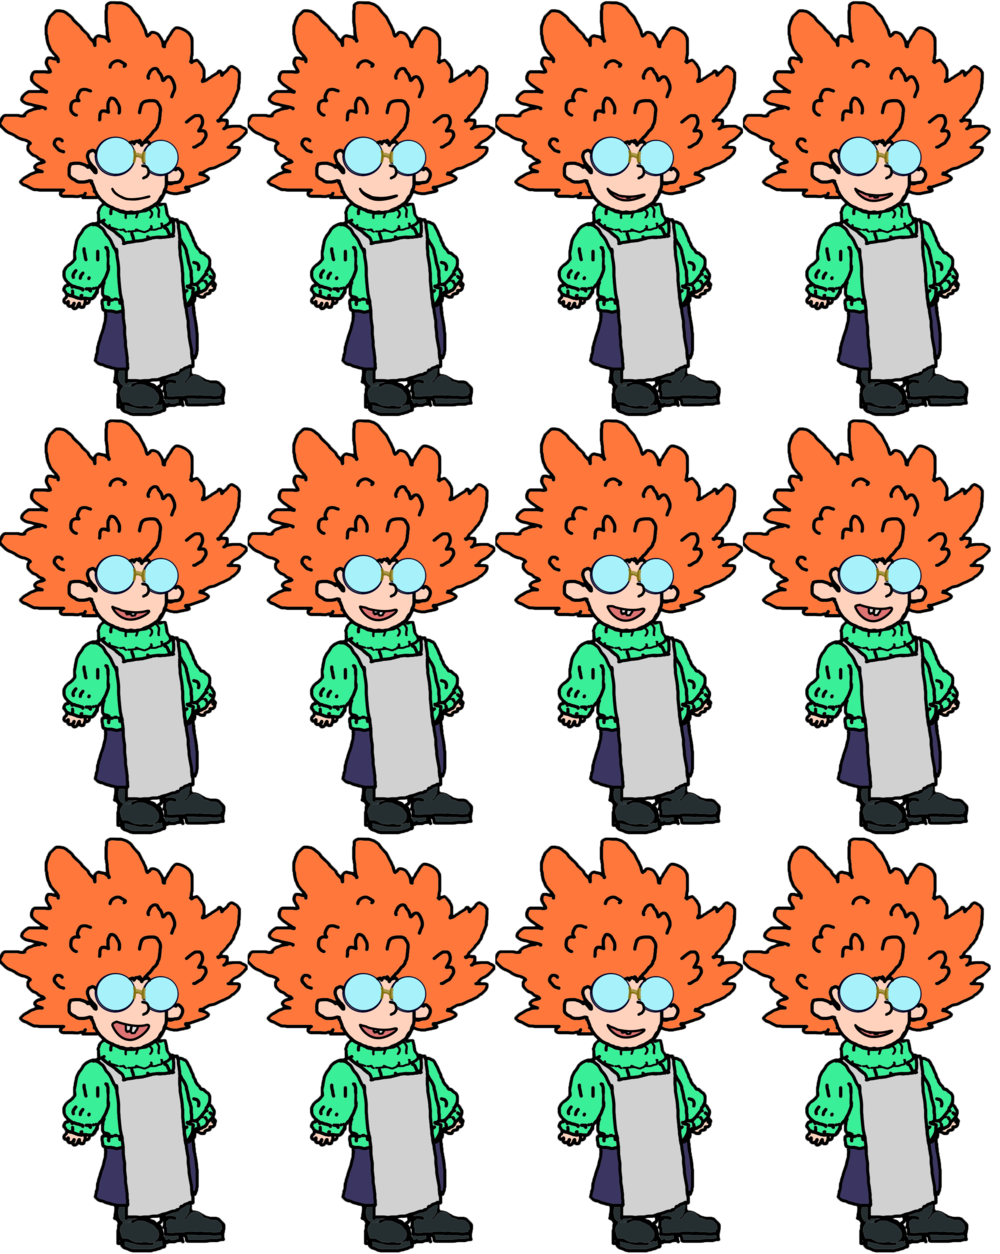 Sprite sheet for Alix, the mad scientist child